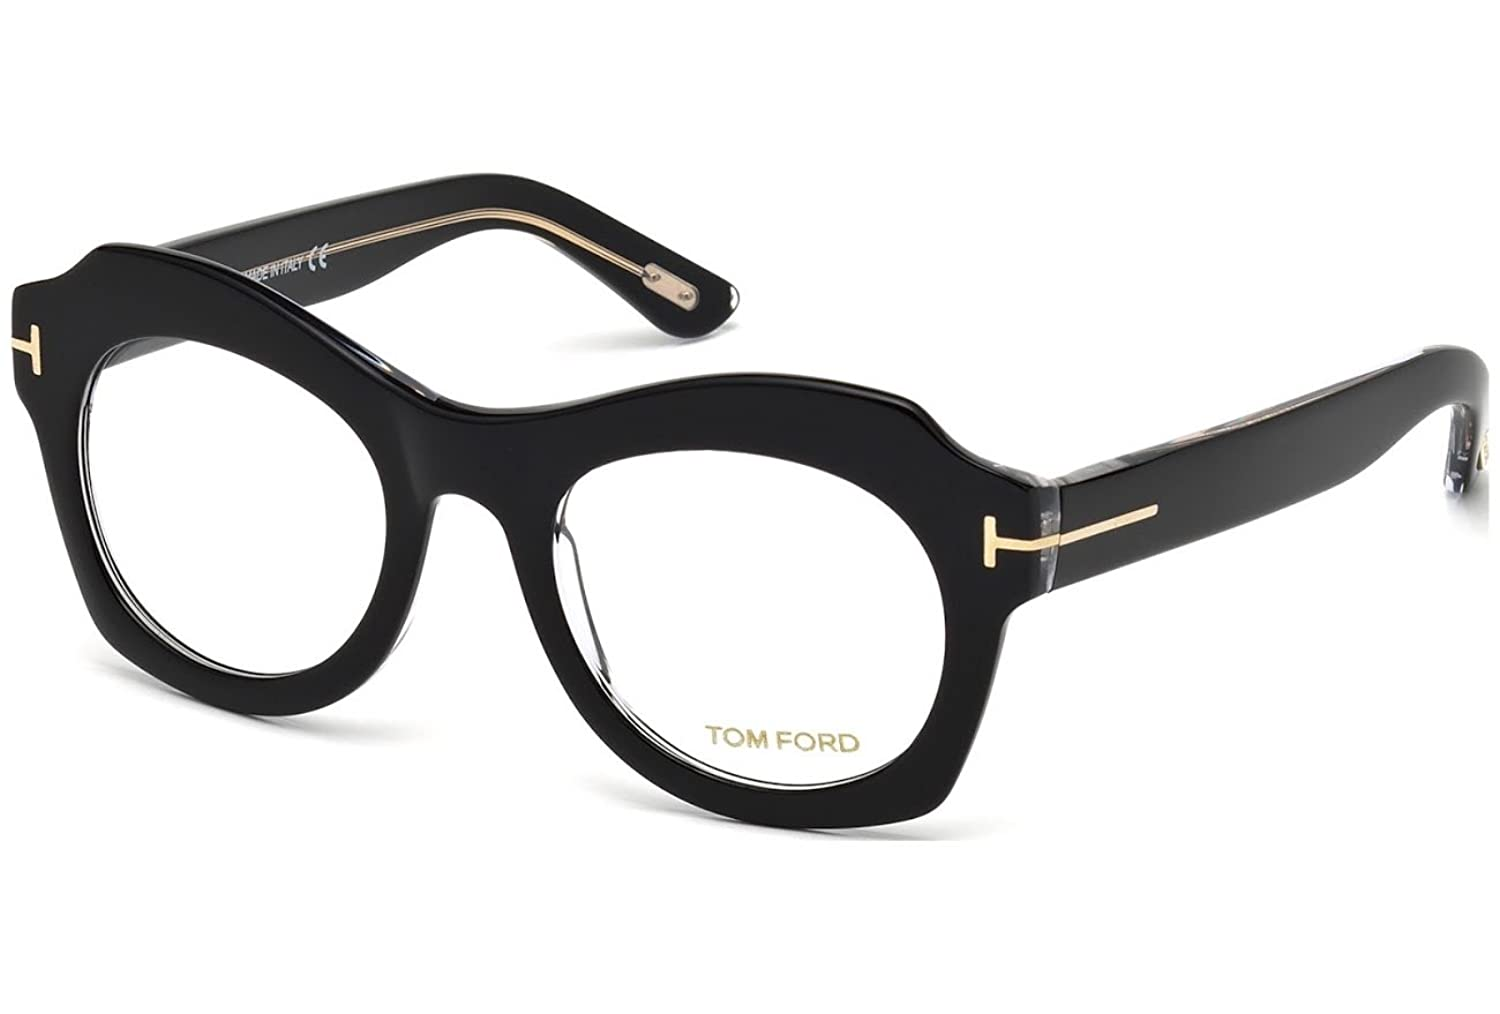 Eyeglasses Tom Ford Tf 5360 Ft5360 005 Black/Other by Tom Ford